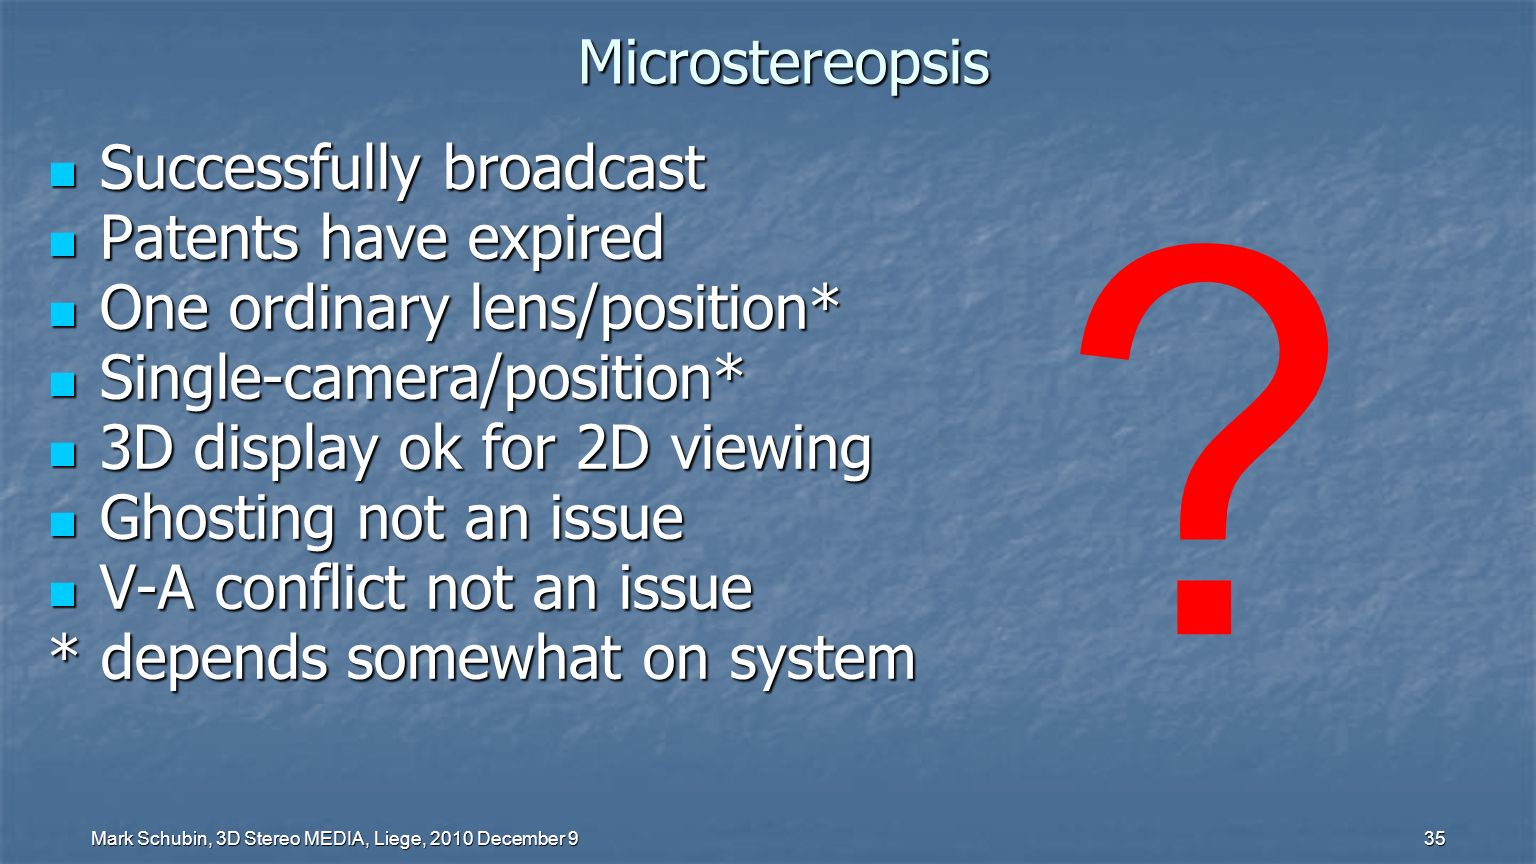 Mark Schubin, 3D Stereo MEDIA, Liege, 2010 December 9 34 Successfully broadcast Successfully broadcast Patents have expired Patents have expired One ordinary lens/position* One ordinary lens/position* Single-camera/position* Single-camera/position* 3D display ok for 2D viewing 3D display ok for 2D viewing Ghosting not an issue Ghosting not an issue V-A conflict not an issue V-A conflict not an issue * depends somewhat on system Microstereopsis